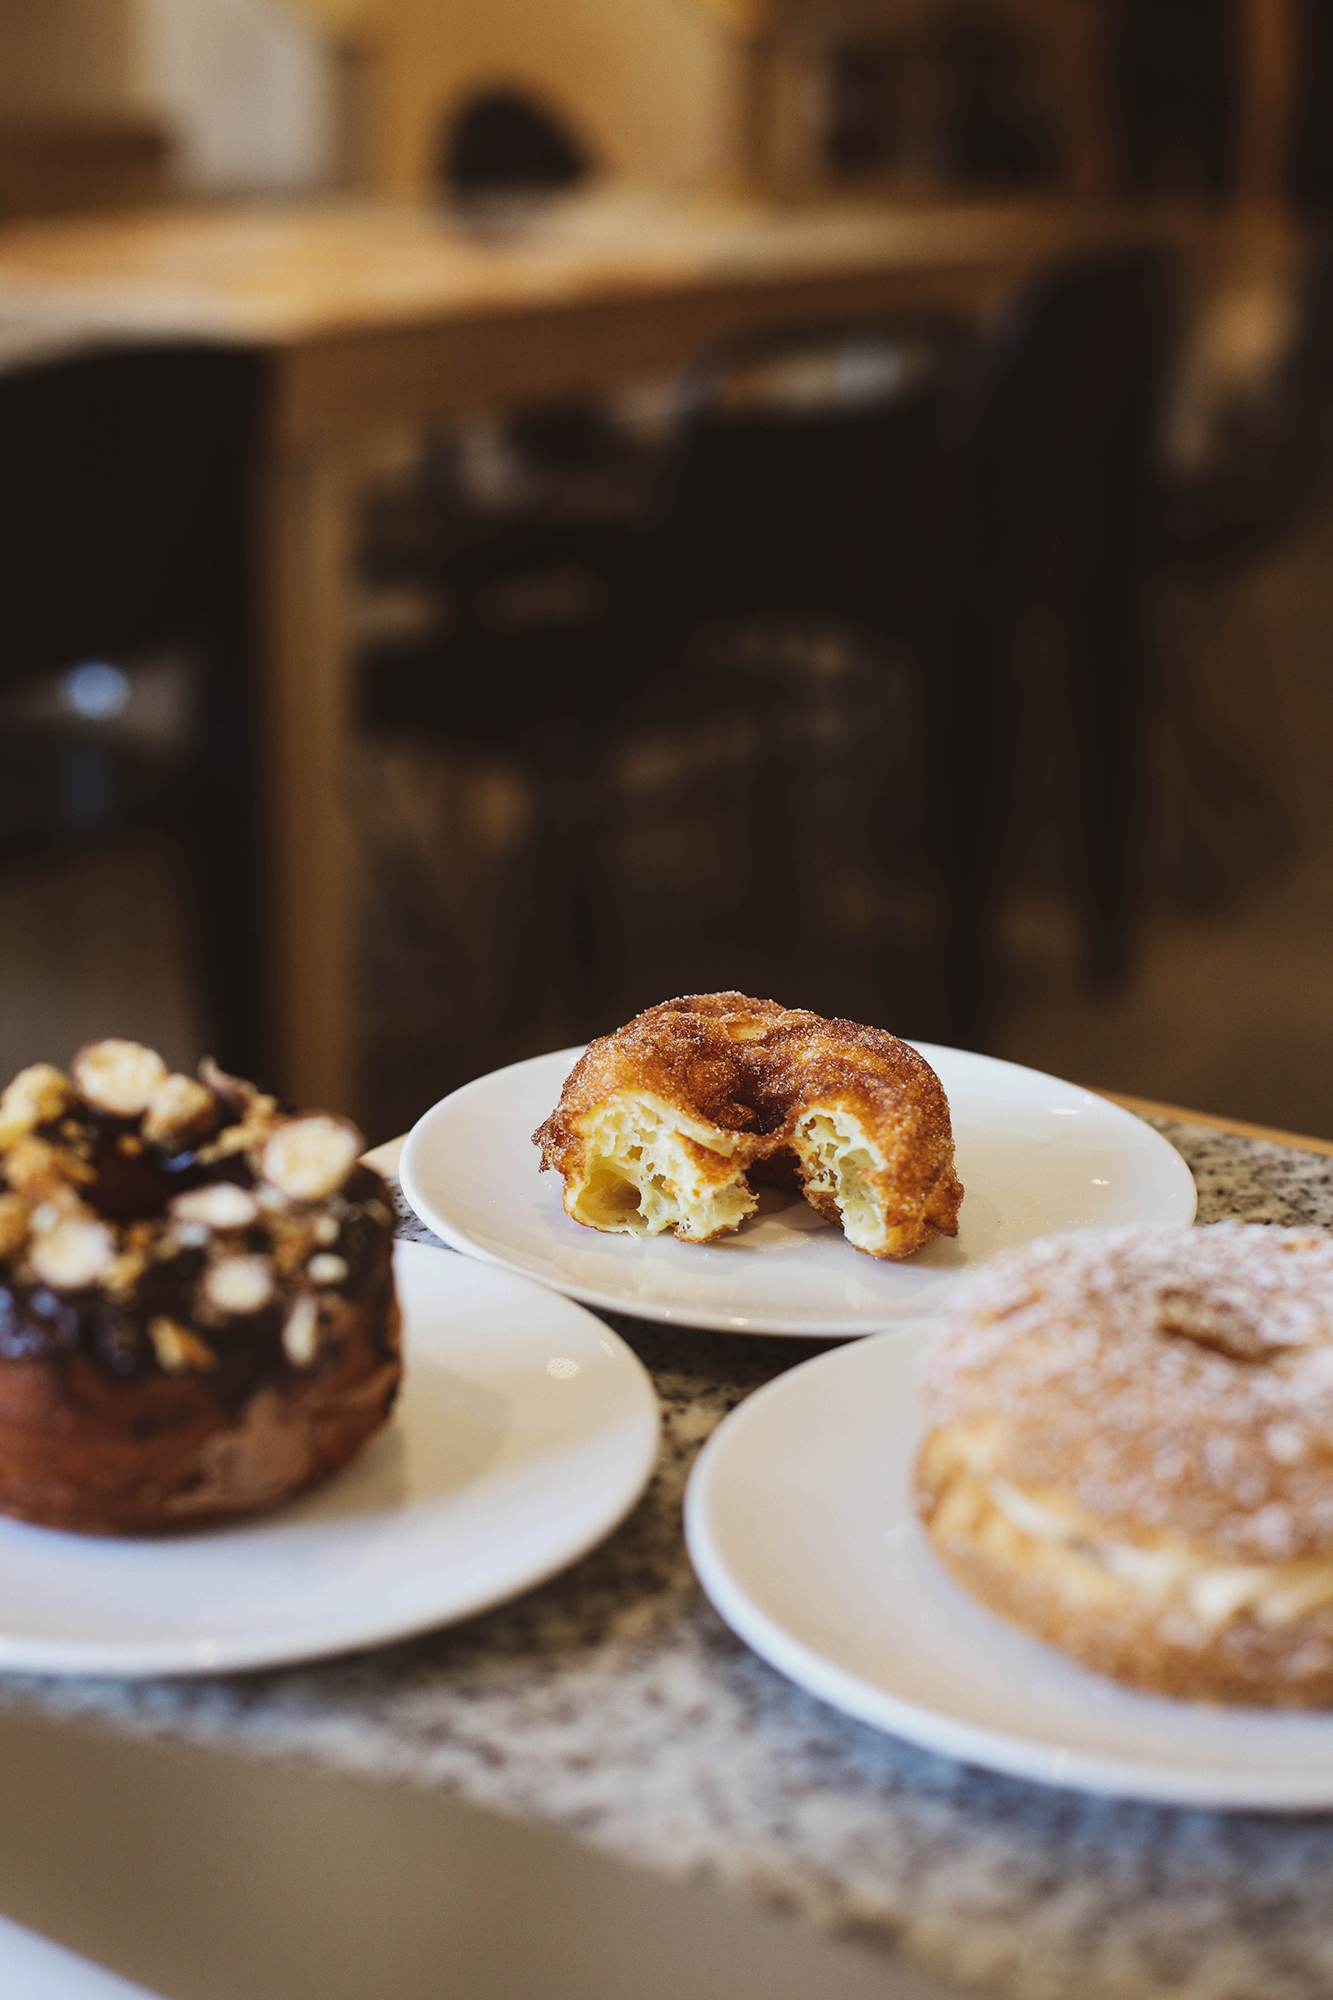 chocolate malt cronut, cinnamon cruller (focus), paris brest